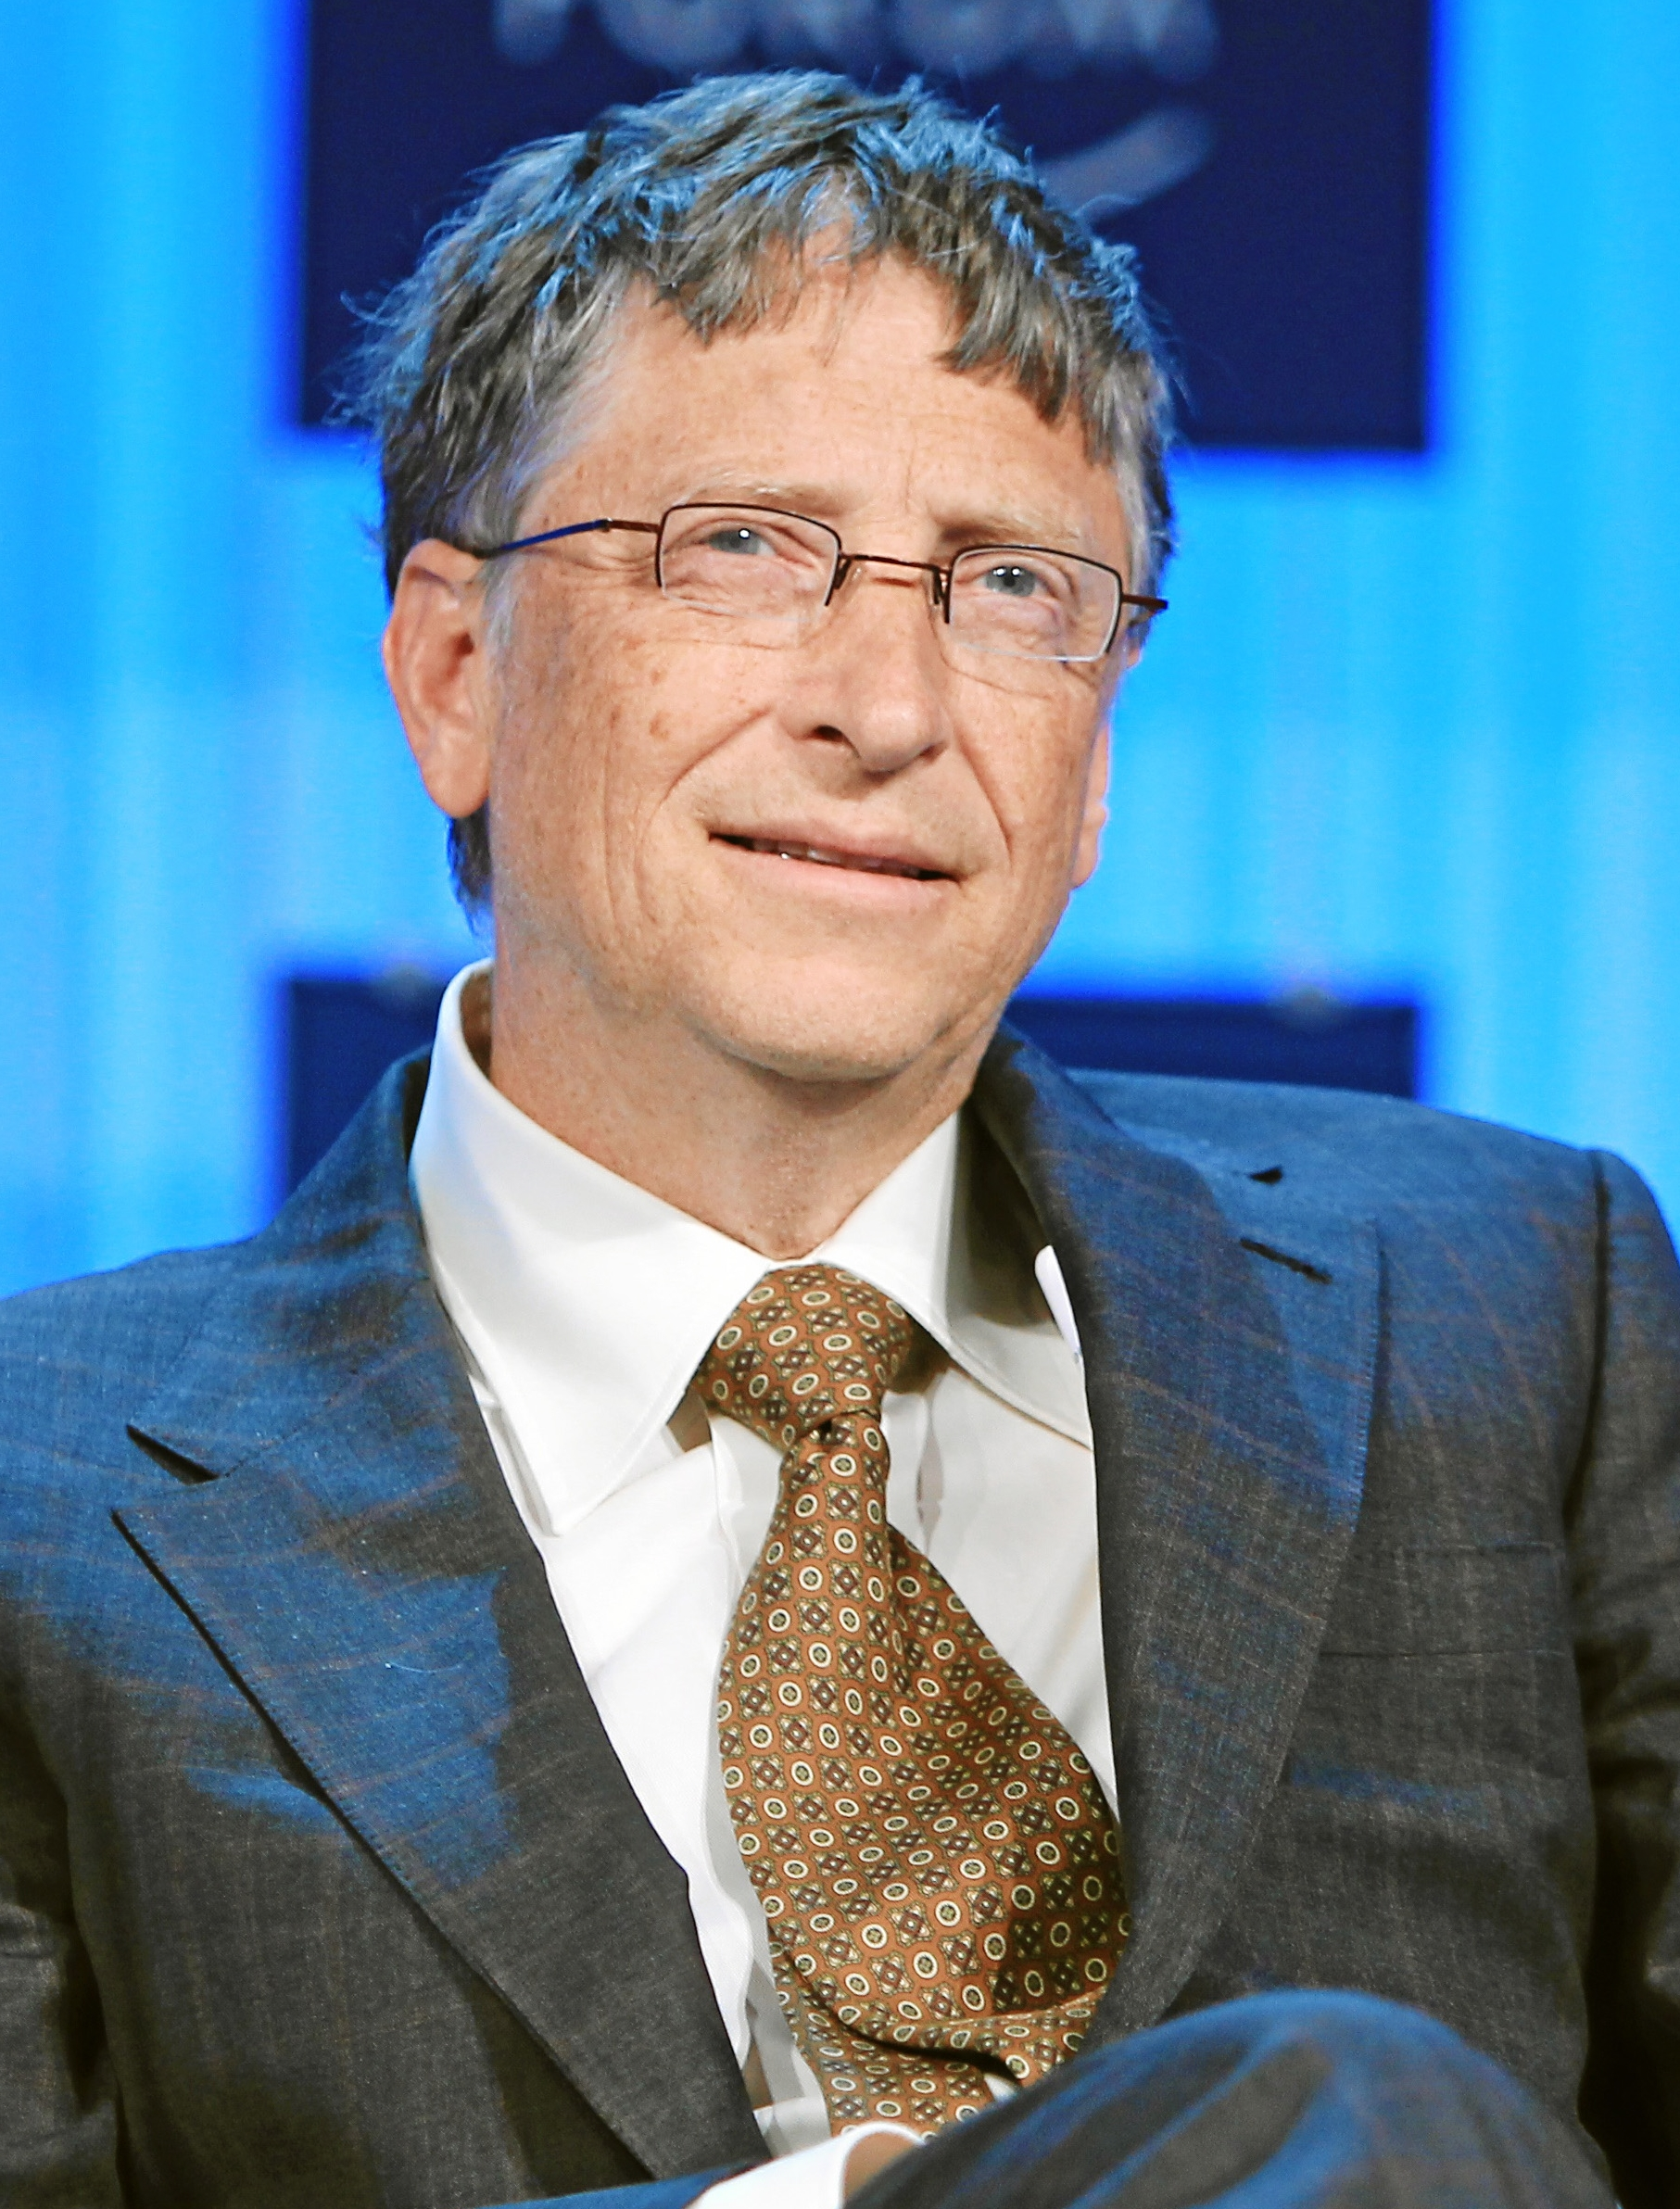 Image result for wikimedia commons bill gates